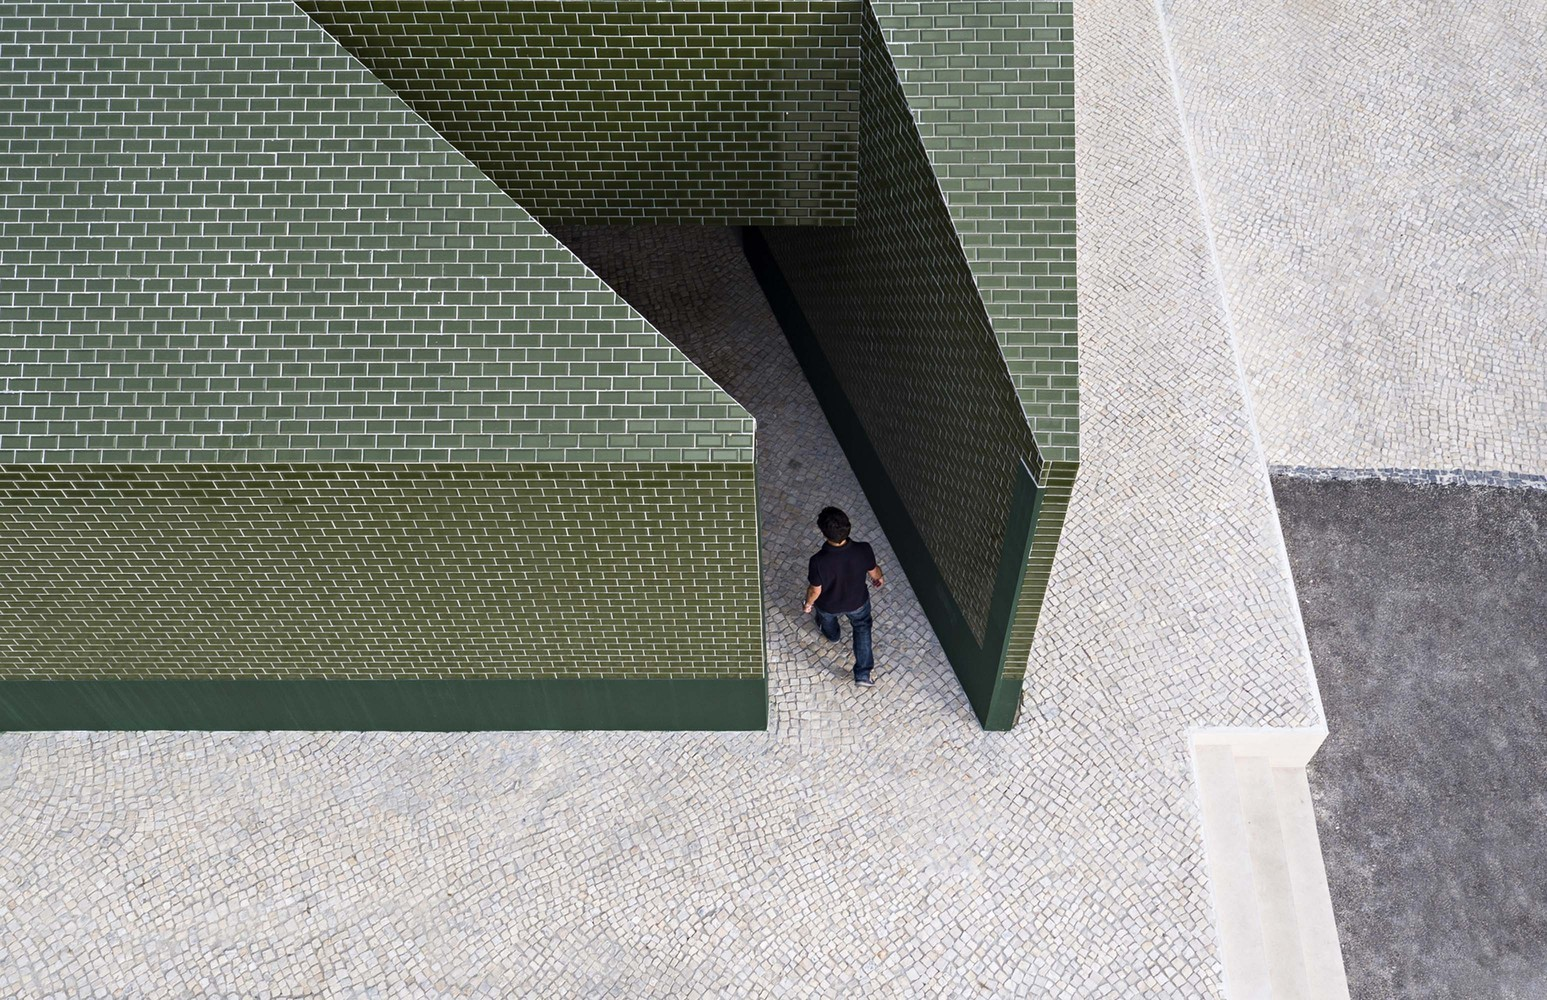 10 Different Projects That Feature the Color Green! - Where Is The Toilet, Please? / M2.senos